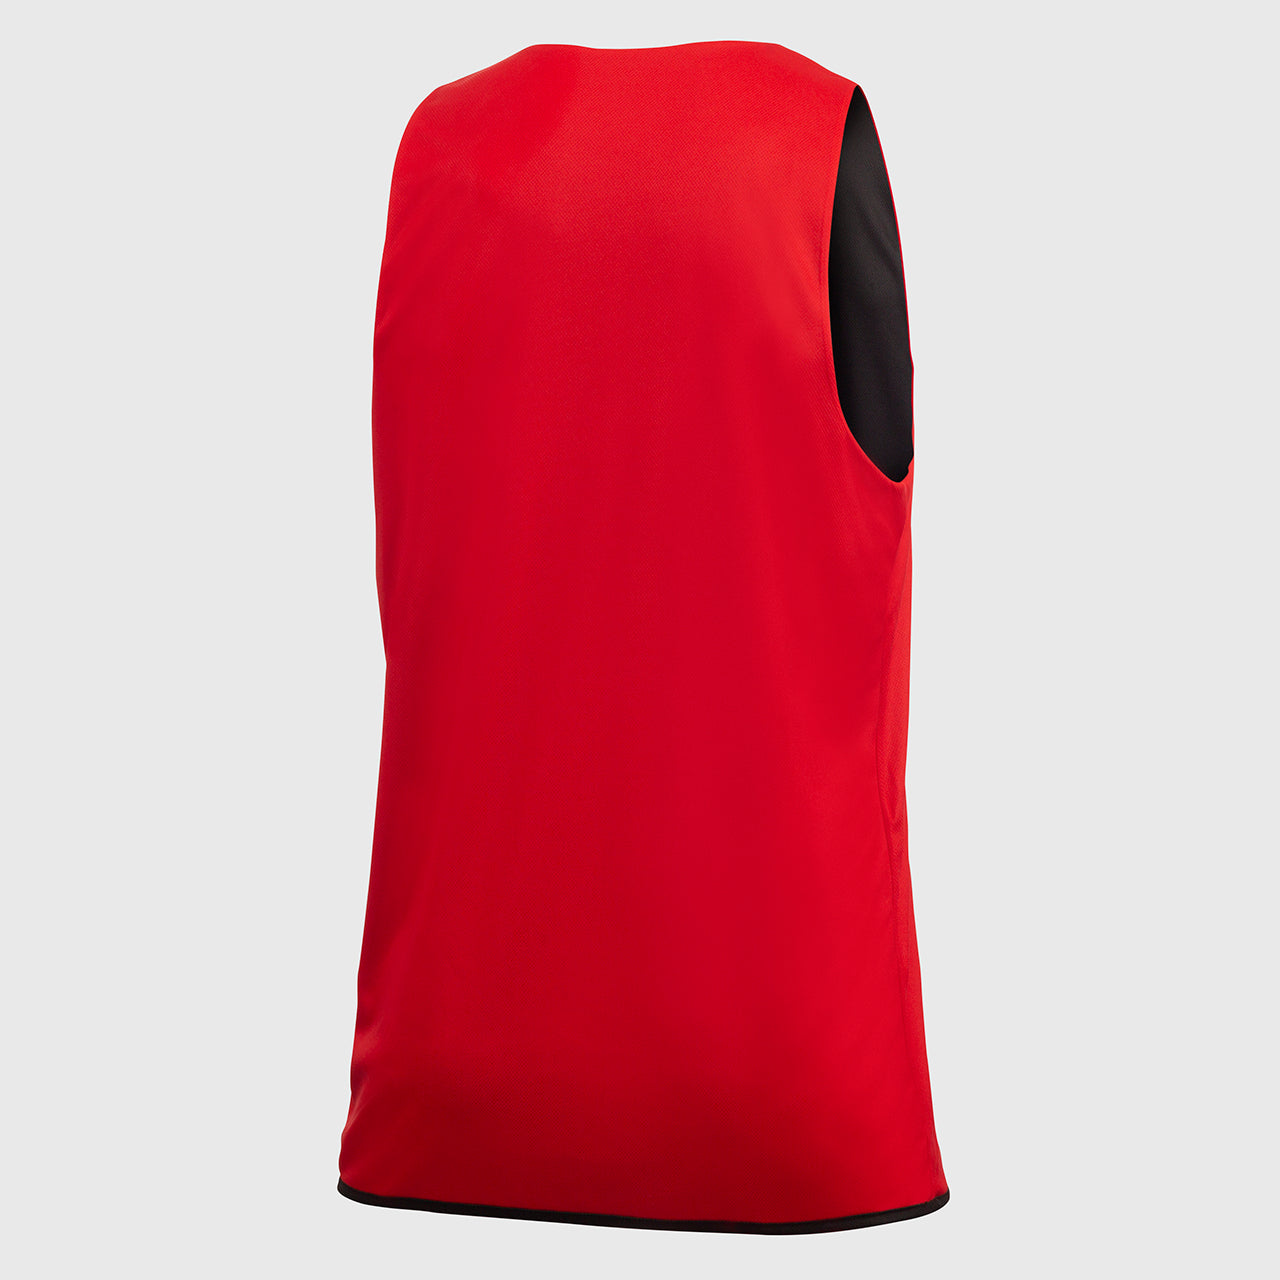 Perth Wildcats 18/19 Reversible Training Singlet